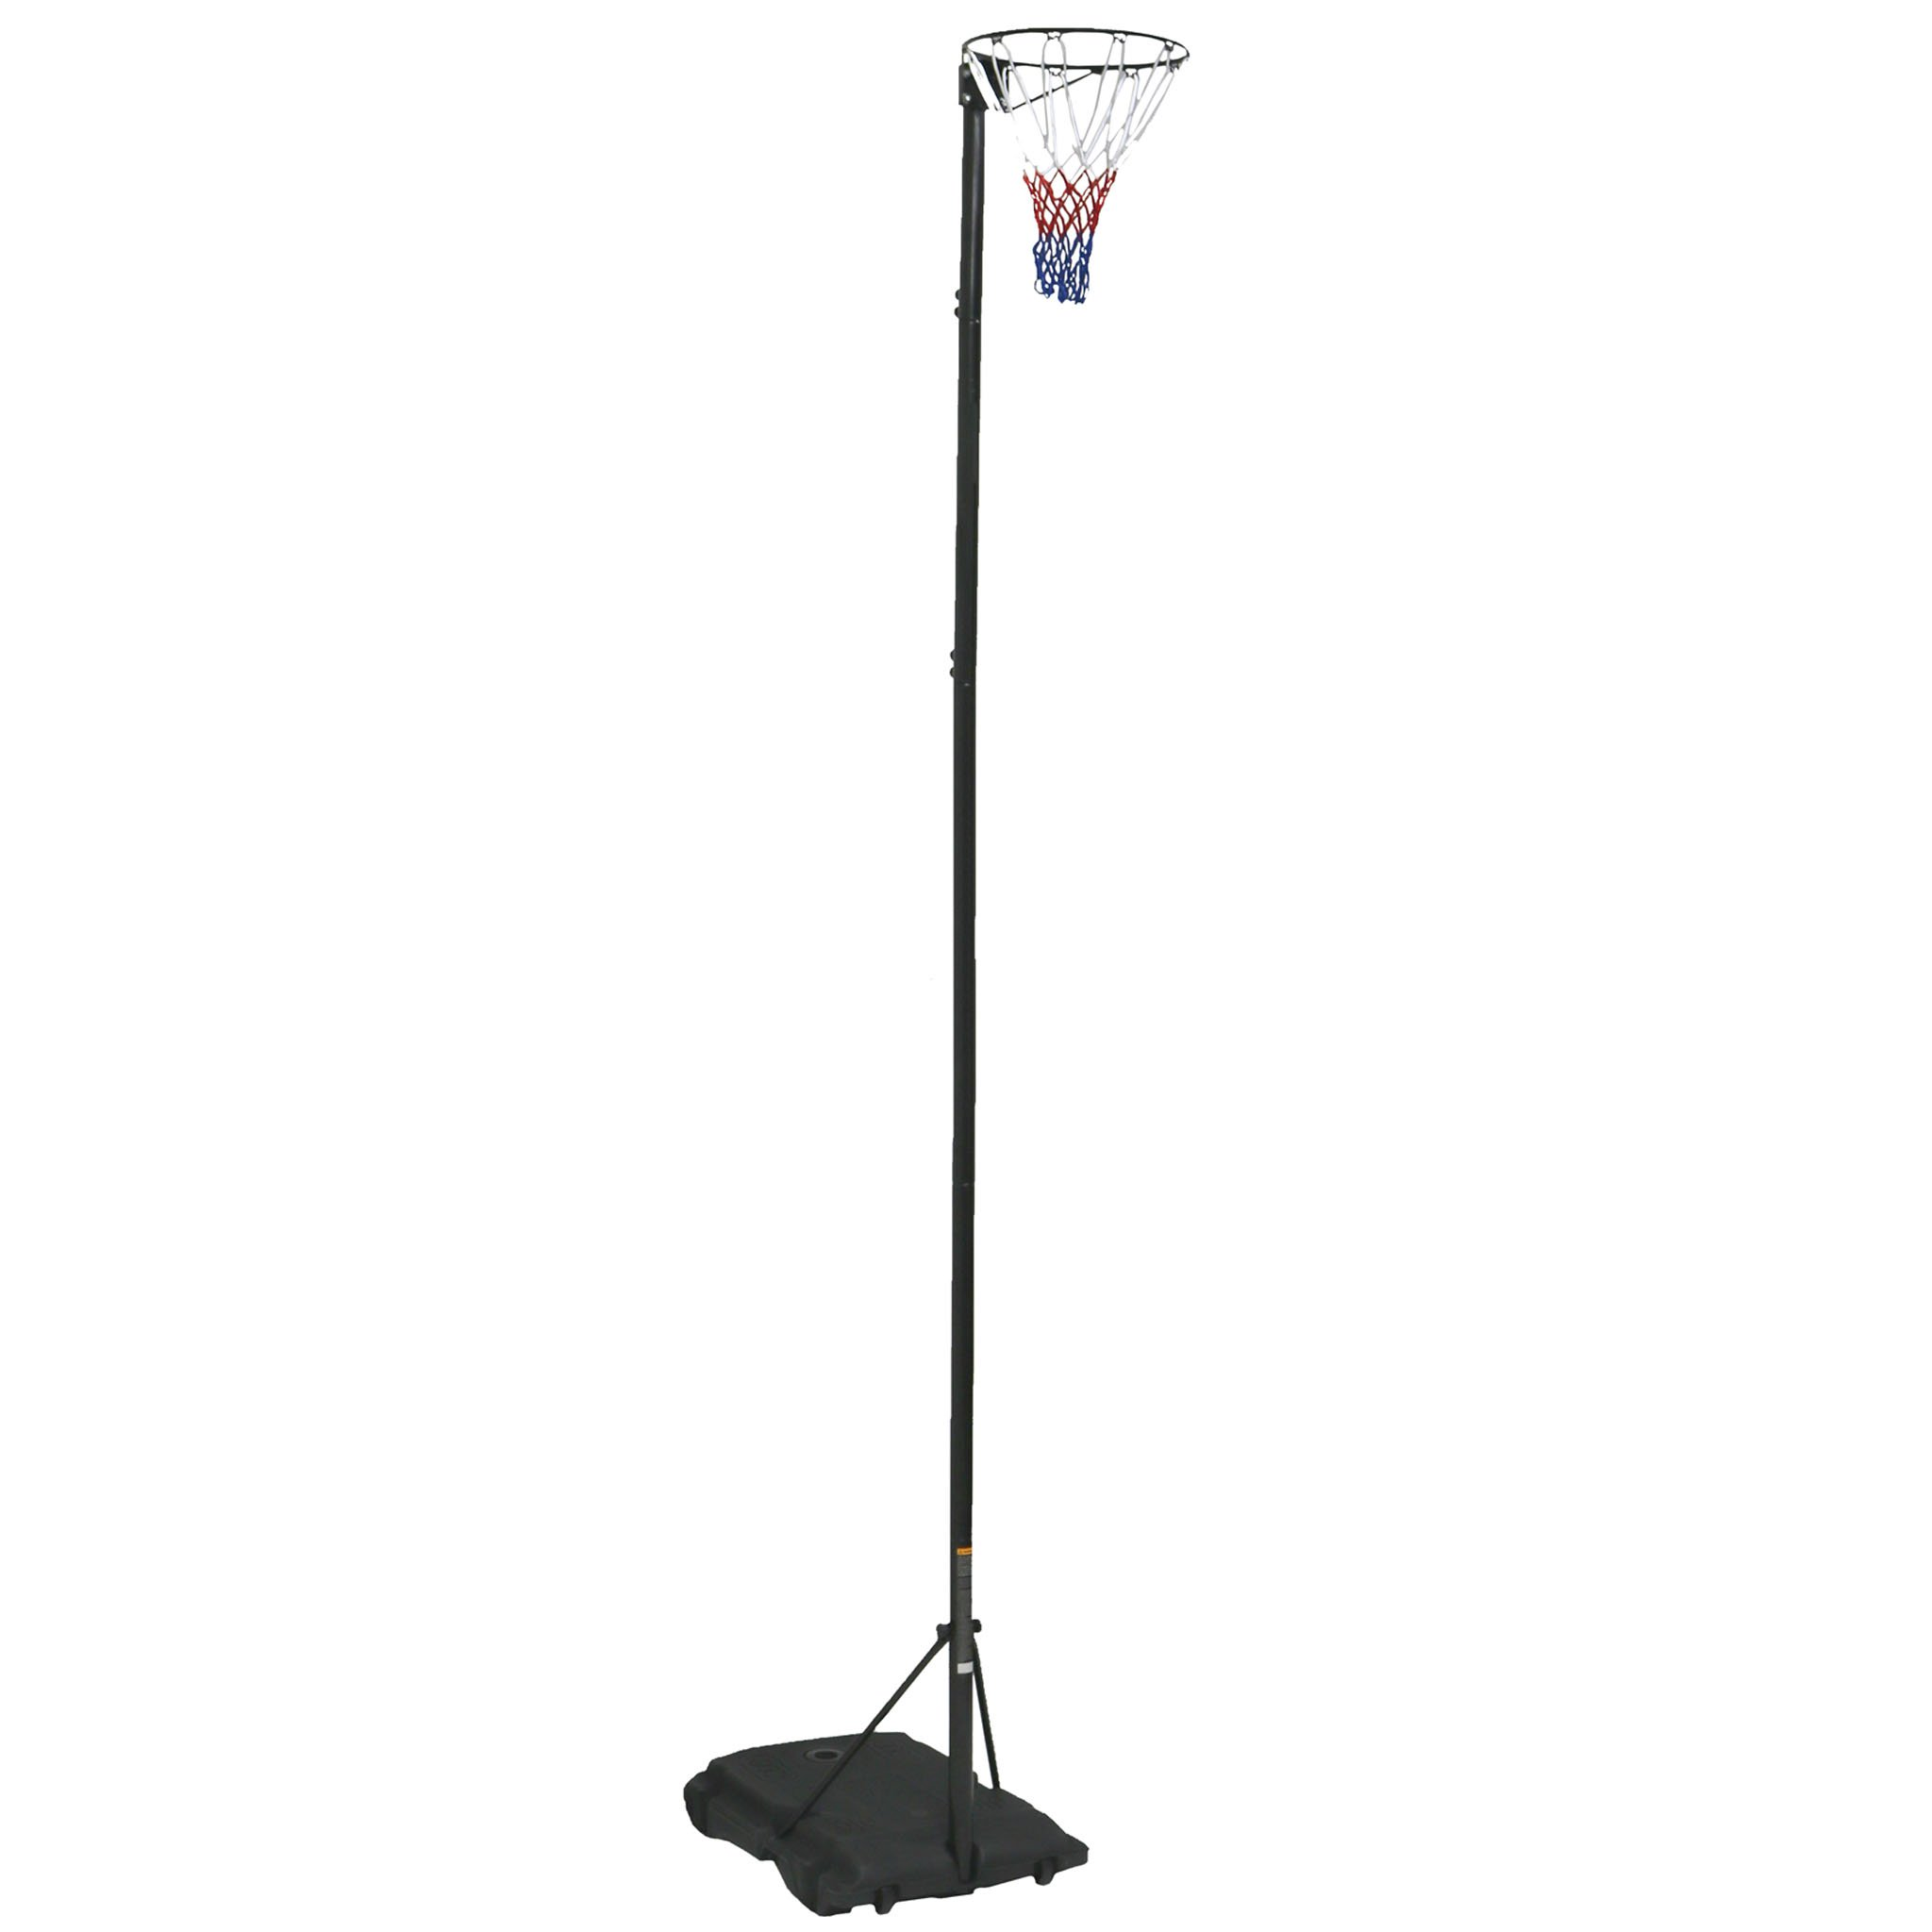 Pro Spec Adjustable Netball Net Post - Black 3.05m